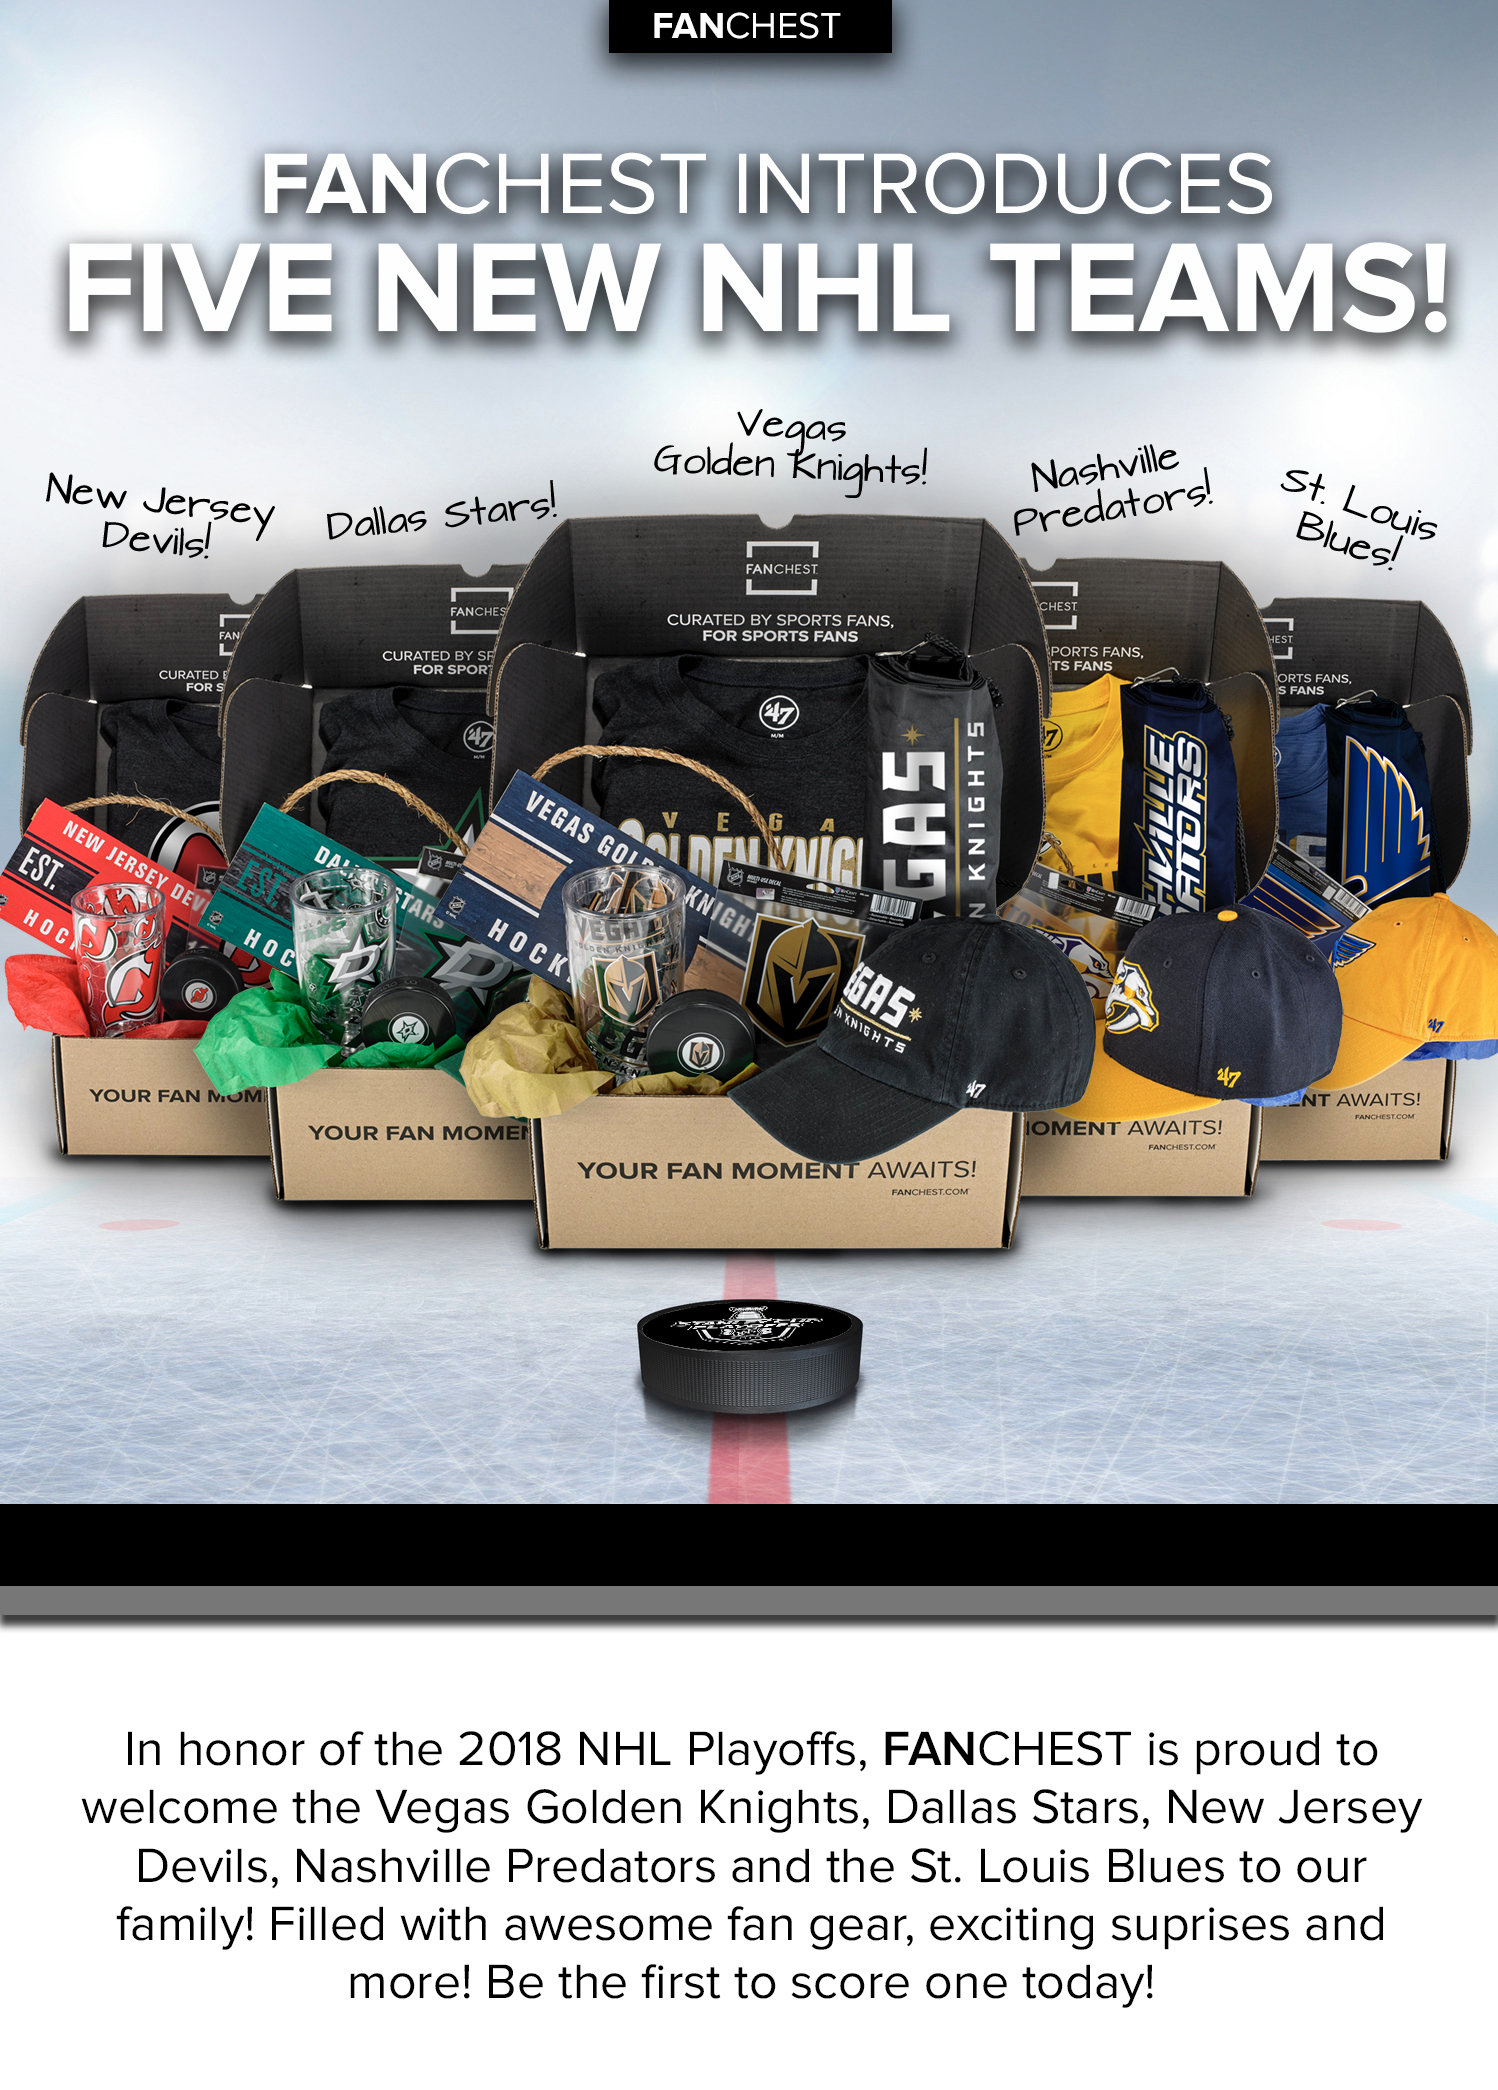 Fanchest Adds 5 New NHL Teams to the Lineup!